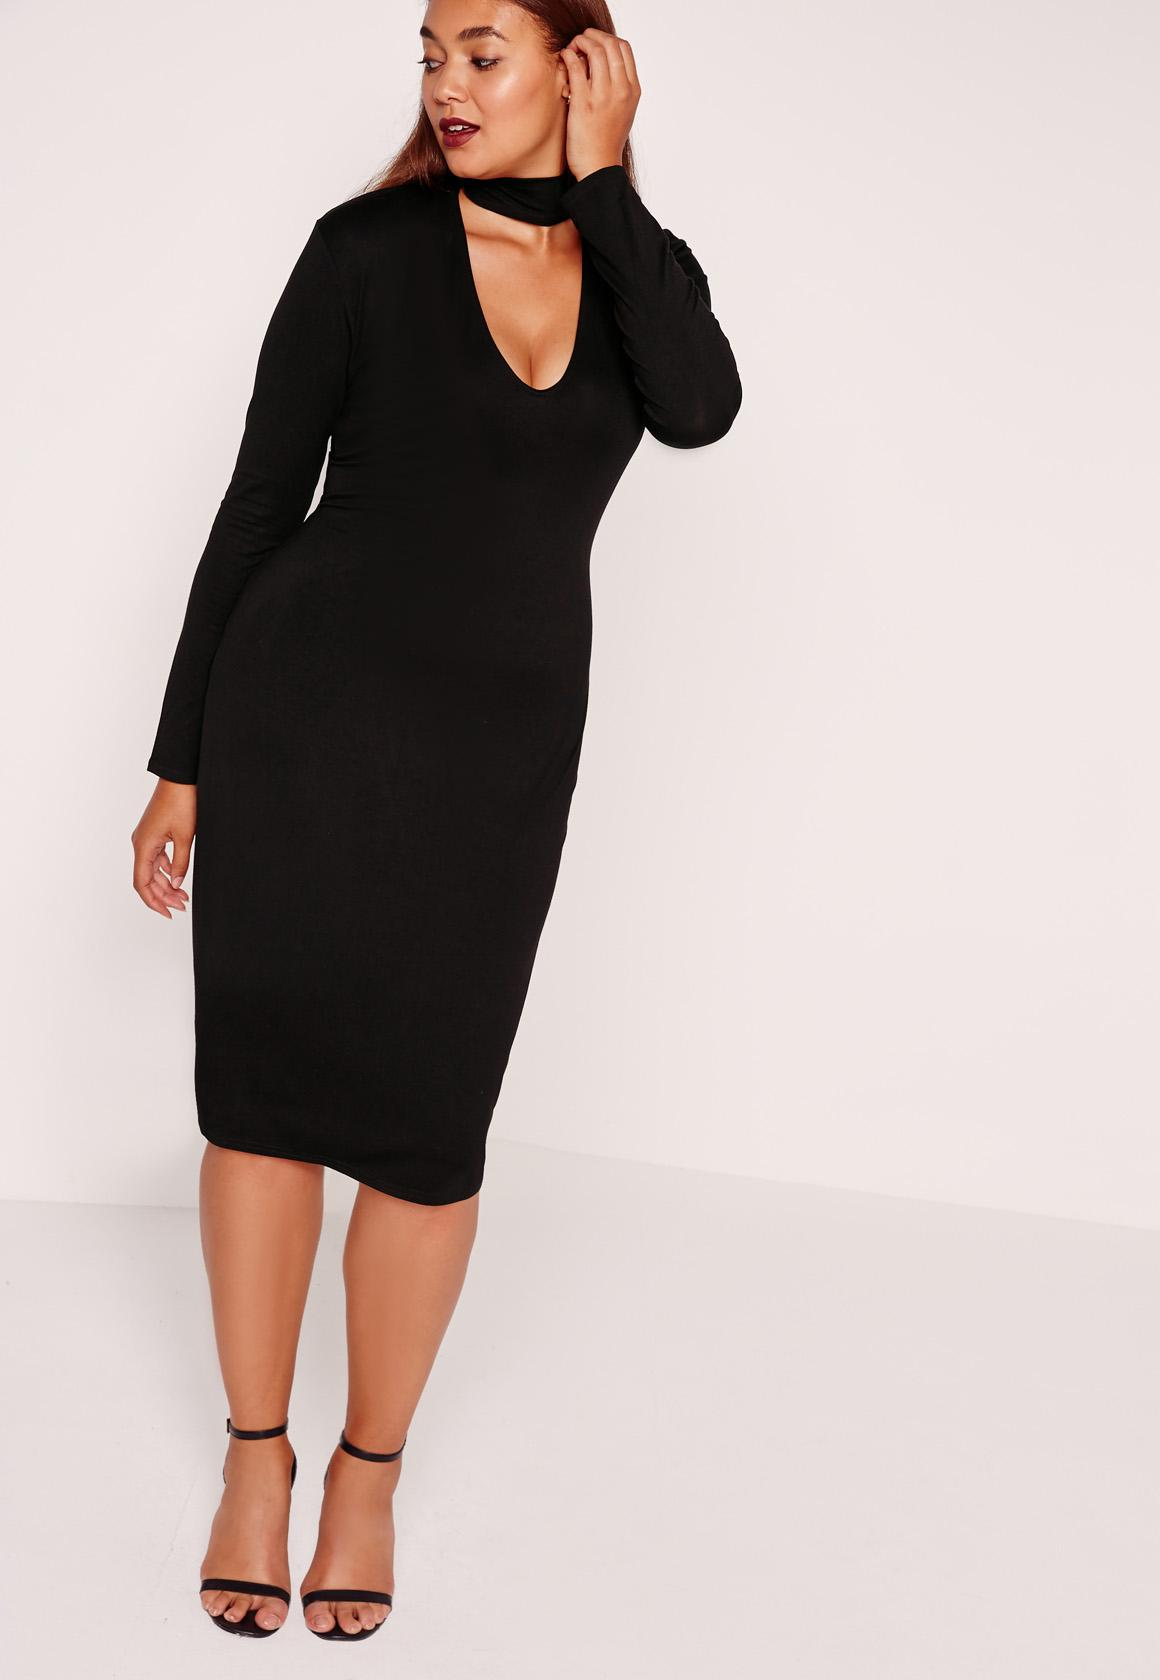 Black bodycon dress new look x ray subscriptions missguided